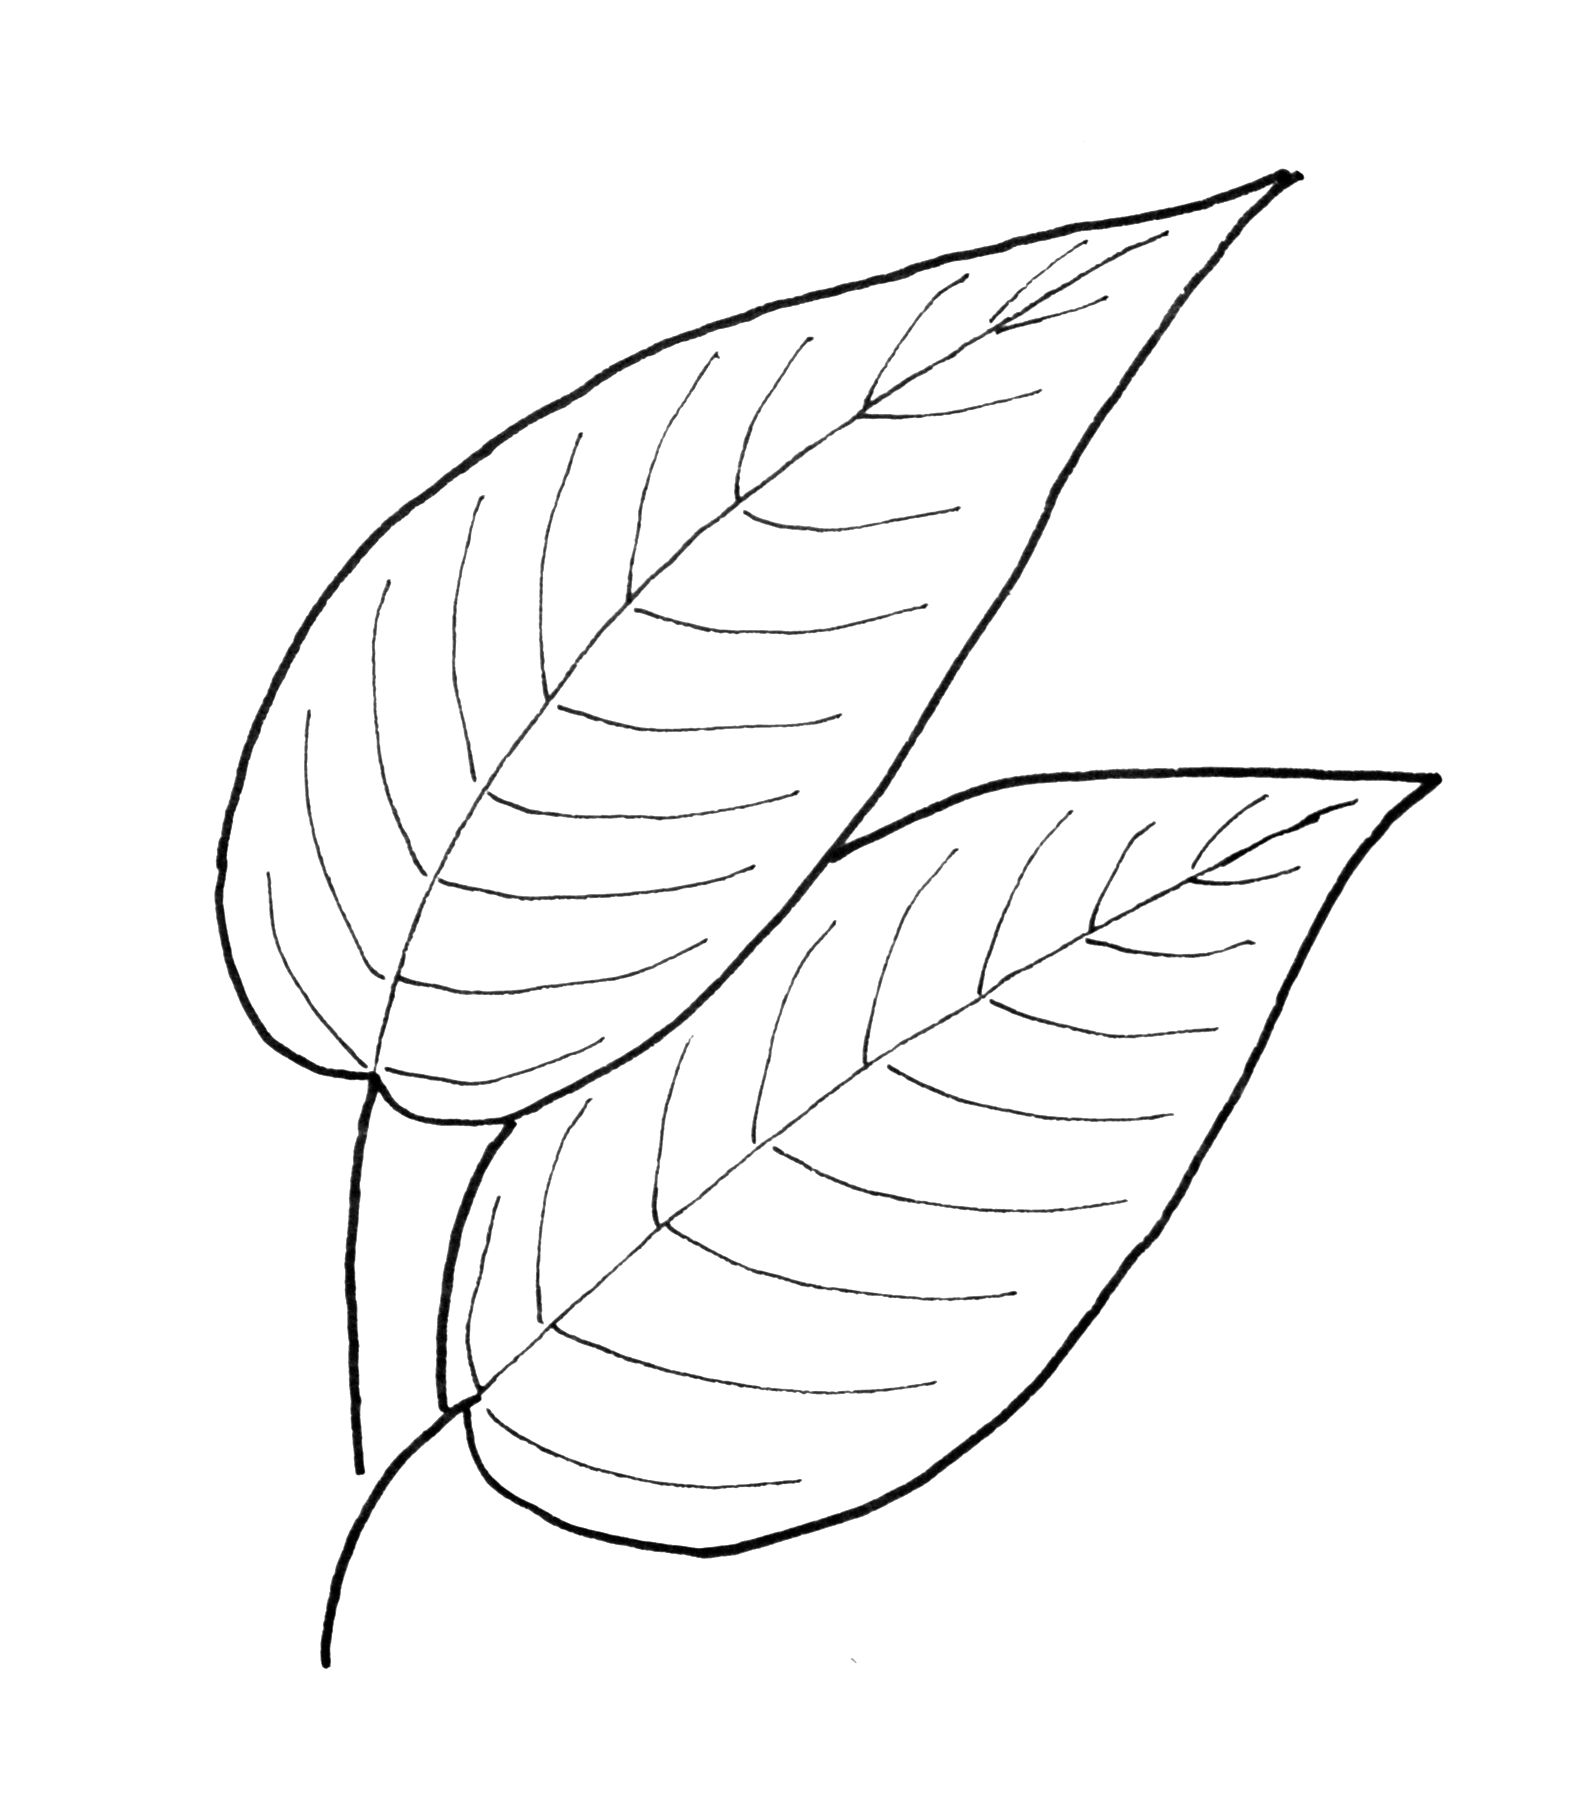 Simple Leaf Drawing At Getdrawings